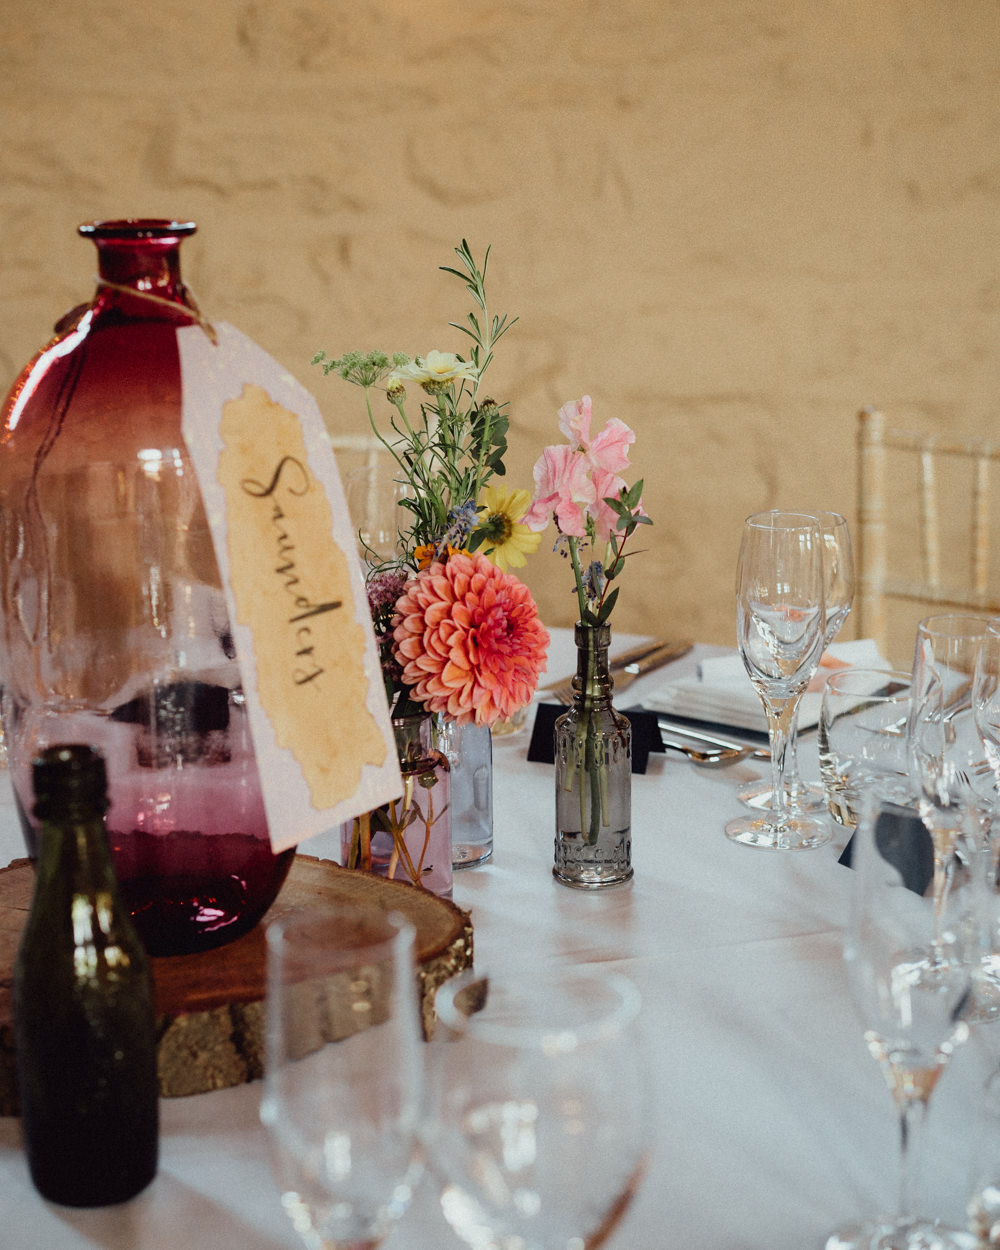 Centrepiece Table Flowers Bottle Table Name Log Slice Priors Court Barn Wedding Emily & Steve Photography